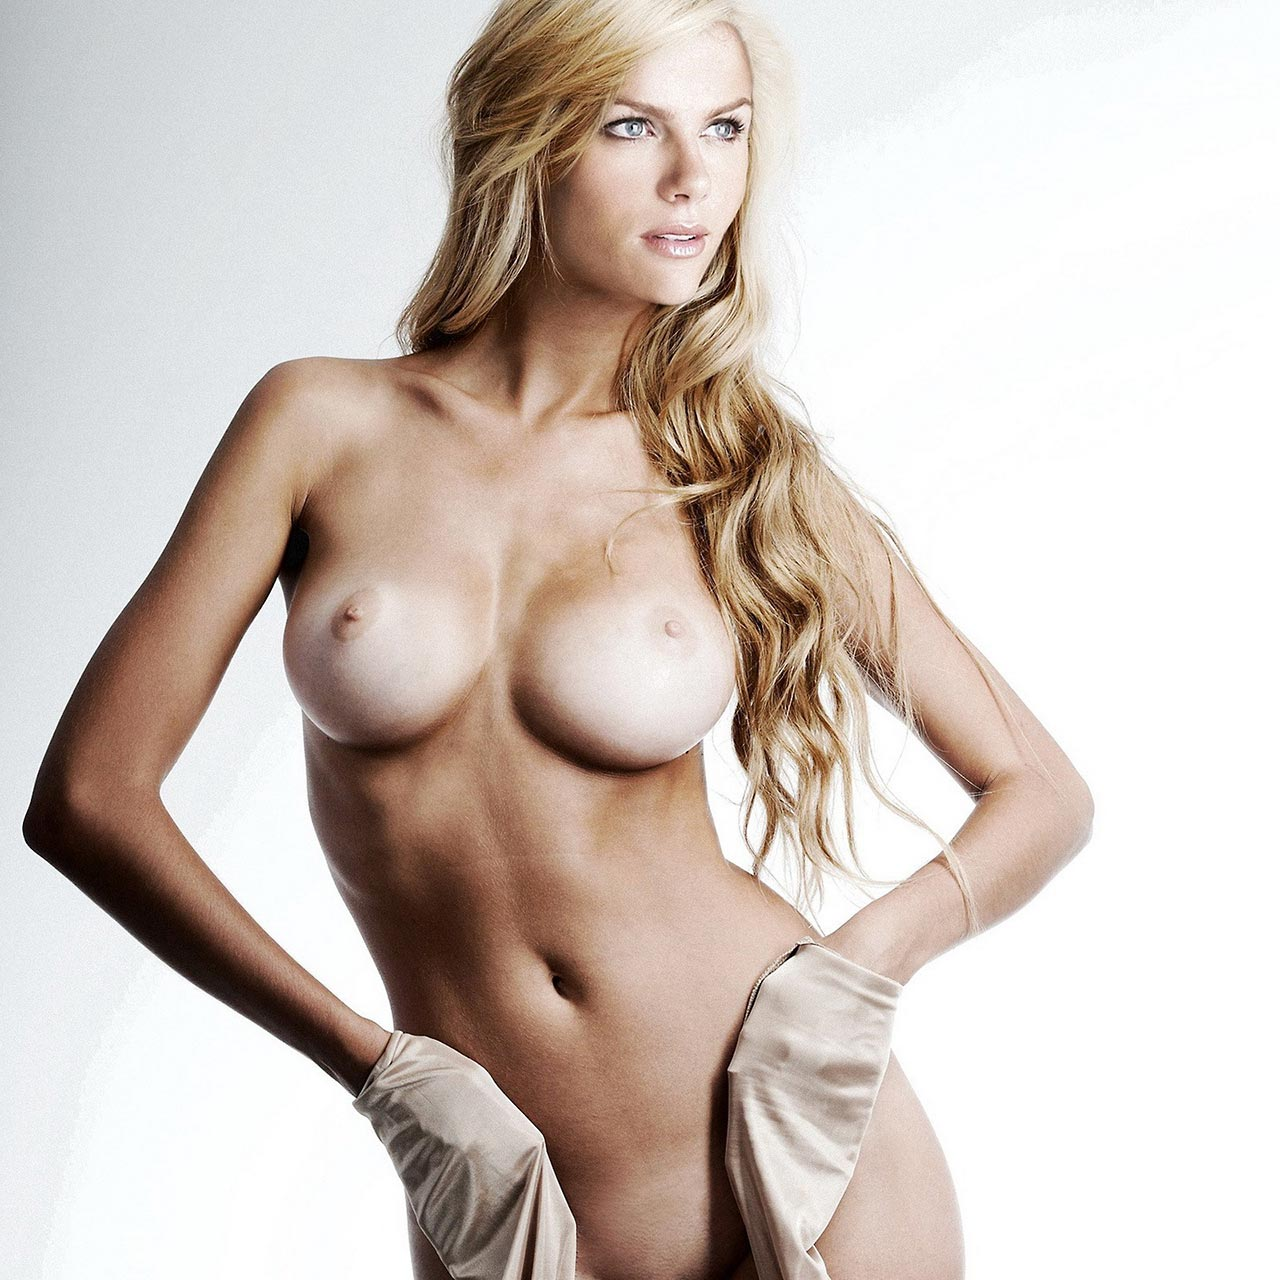 Brooklyn Decker In Hot Lingerie